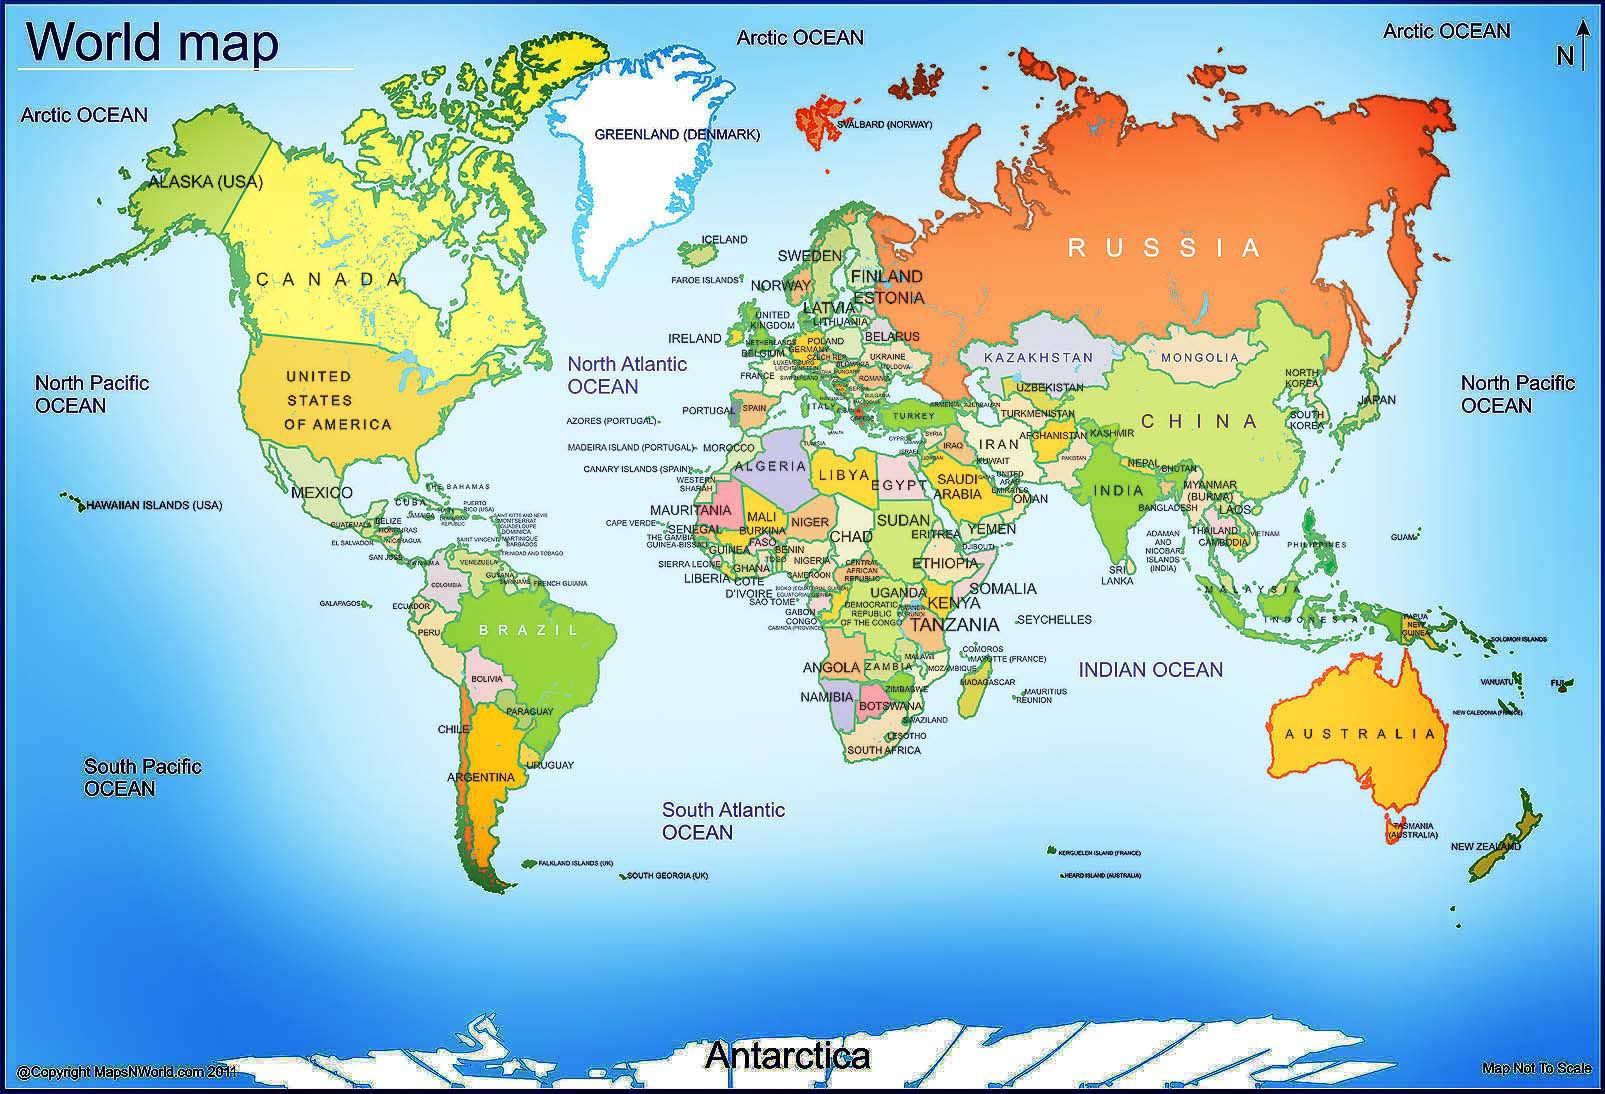 Free Map Of The World Showing Countries.World Map Free Large Images Maps World Map With Countries